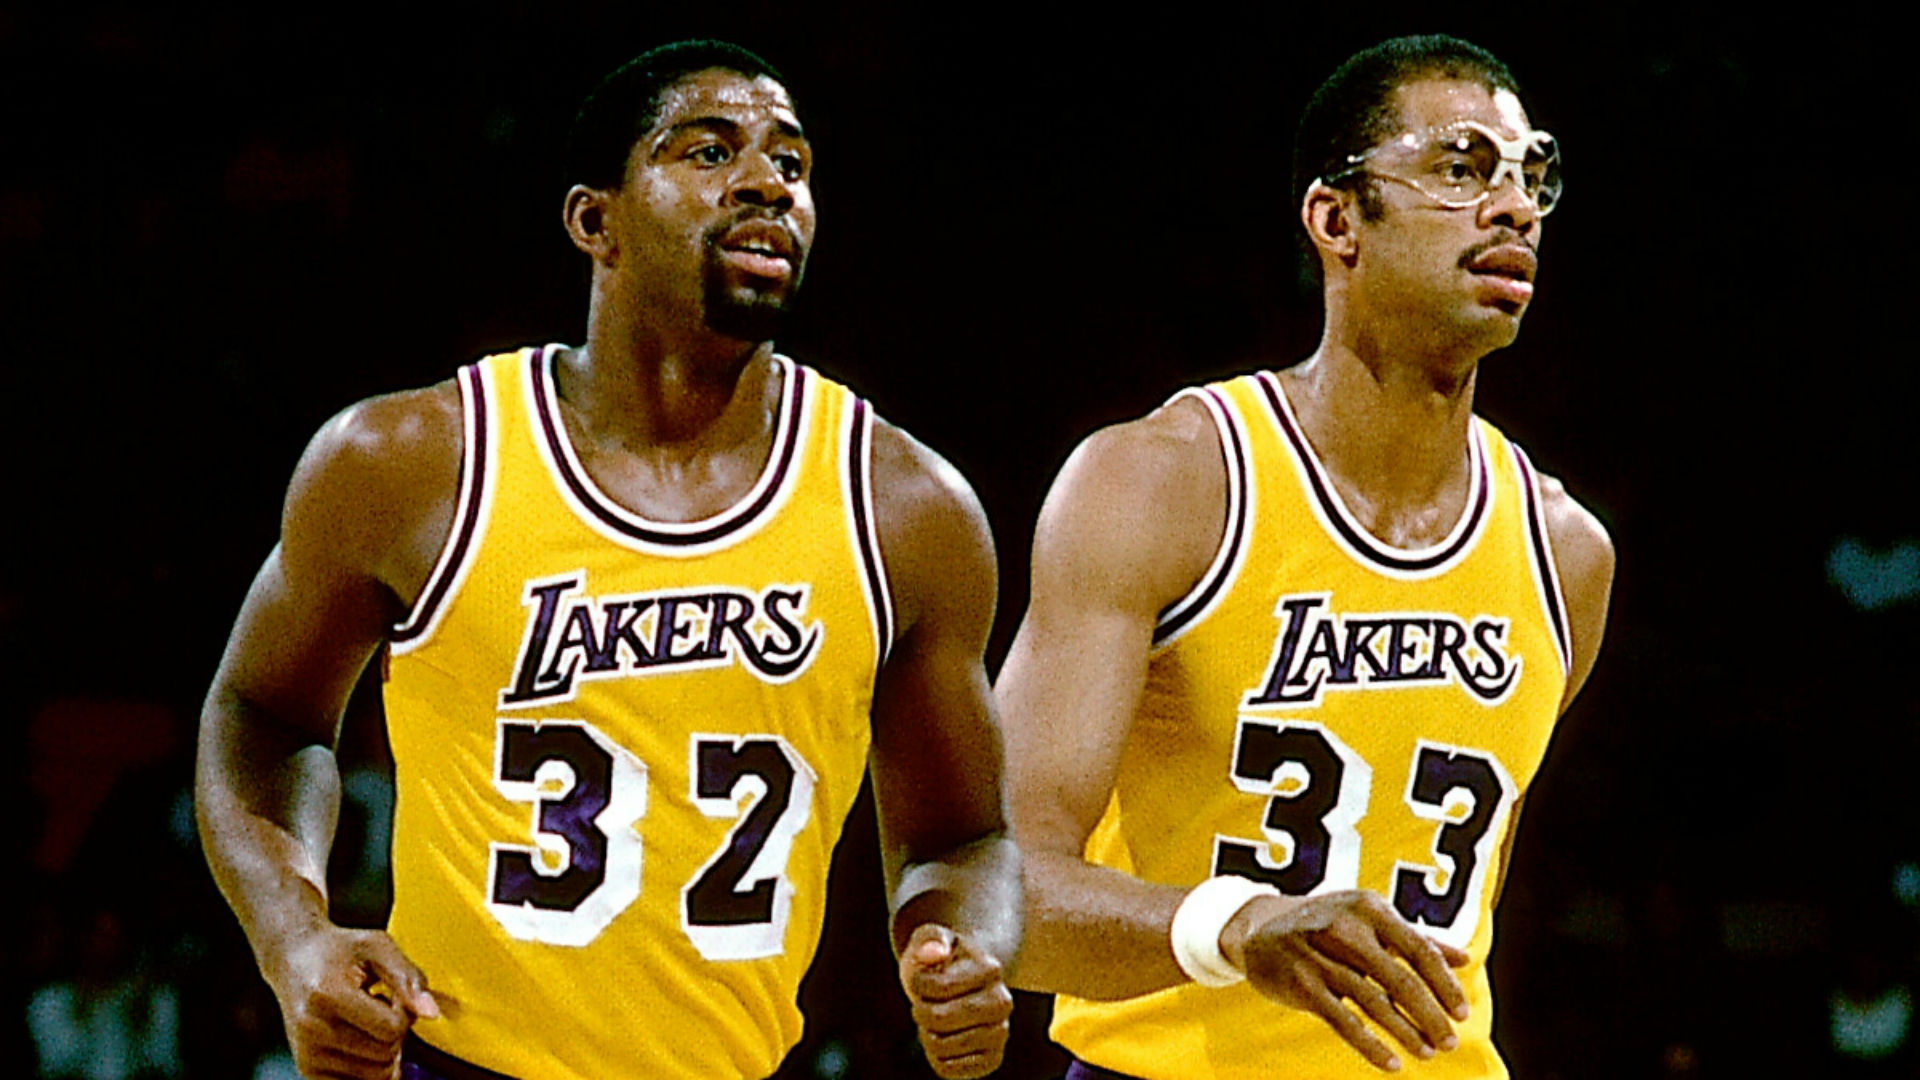 Magic Johnson, Kareem Abdul-Jabbar